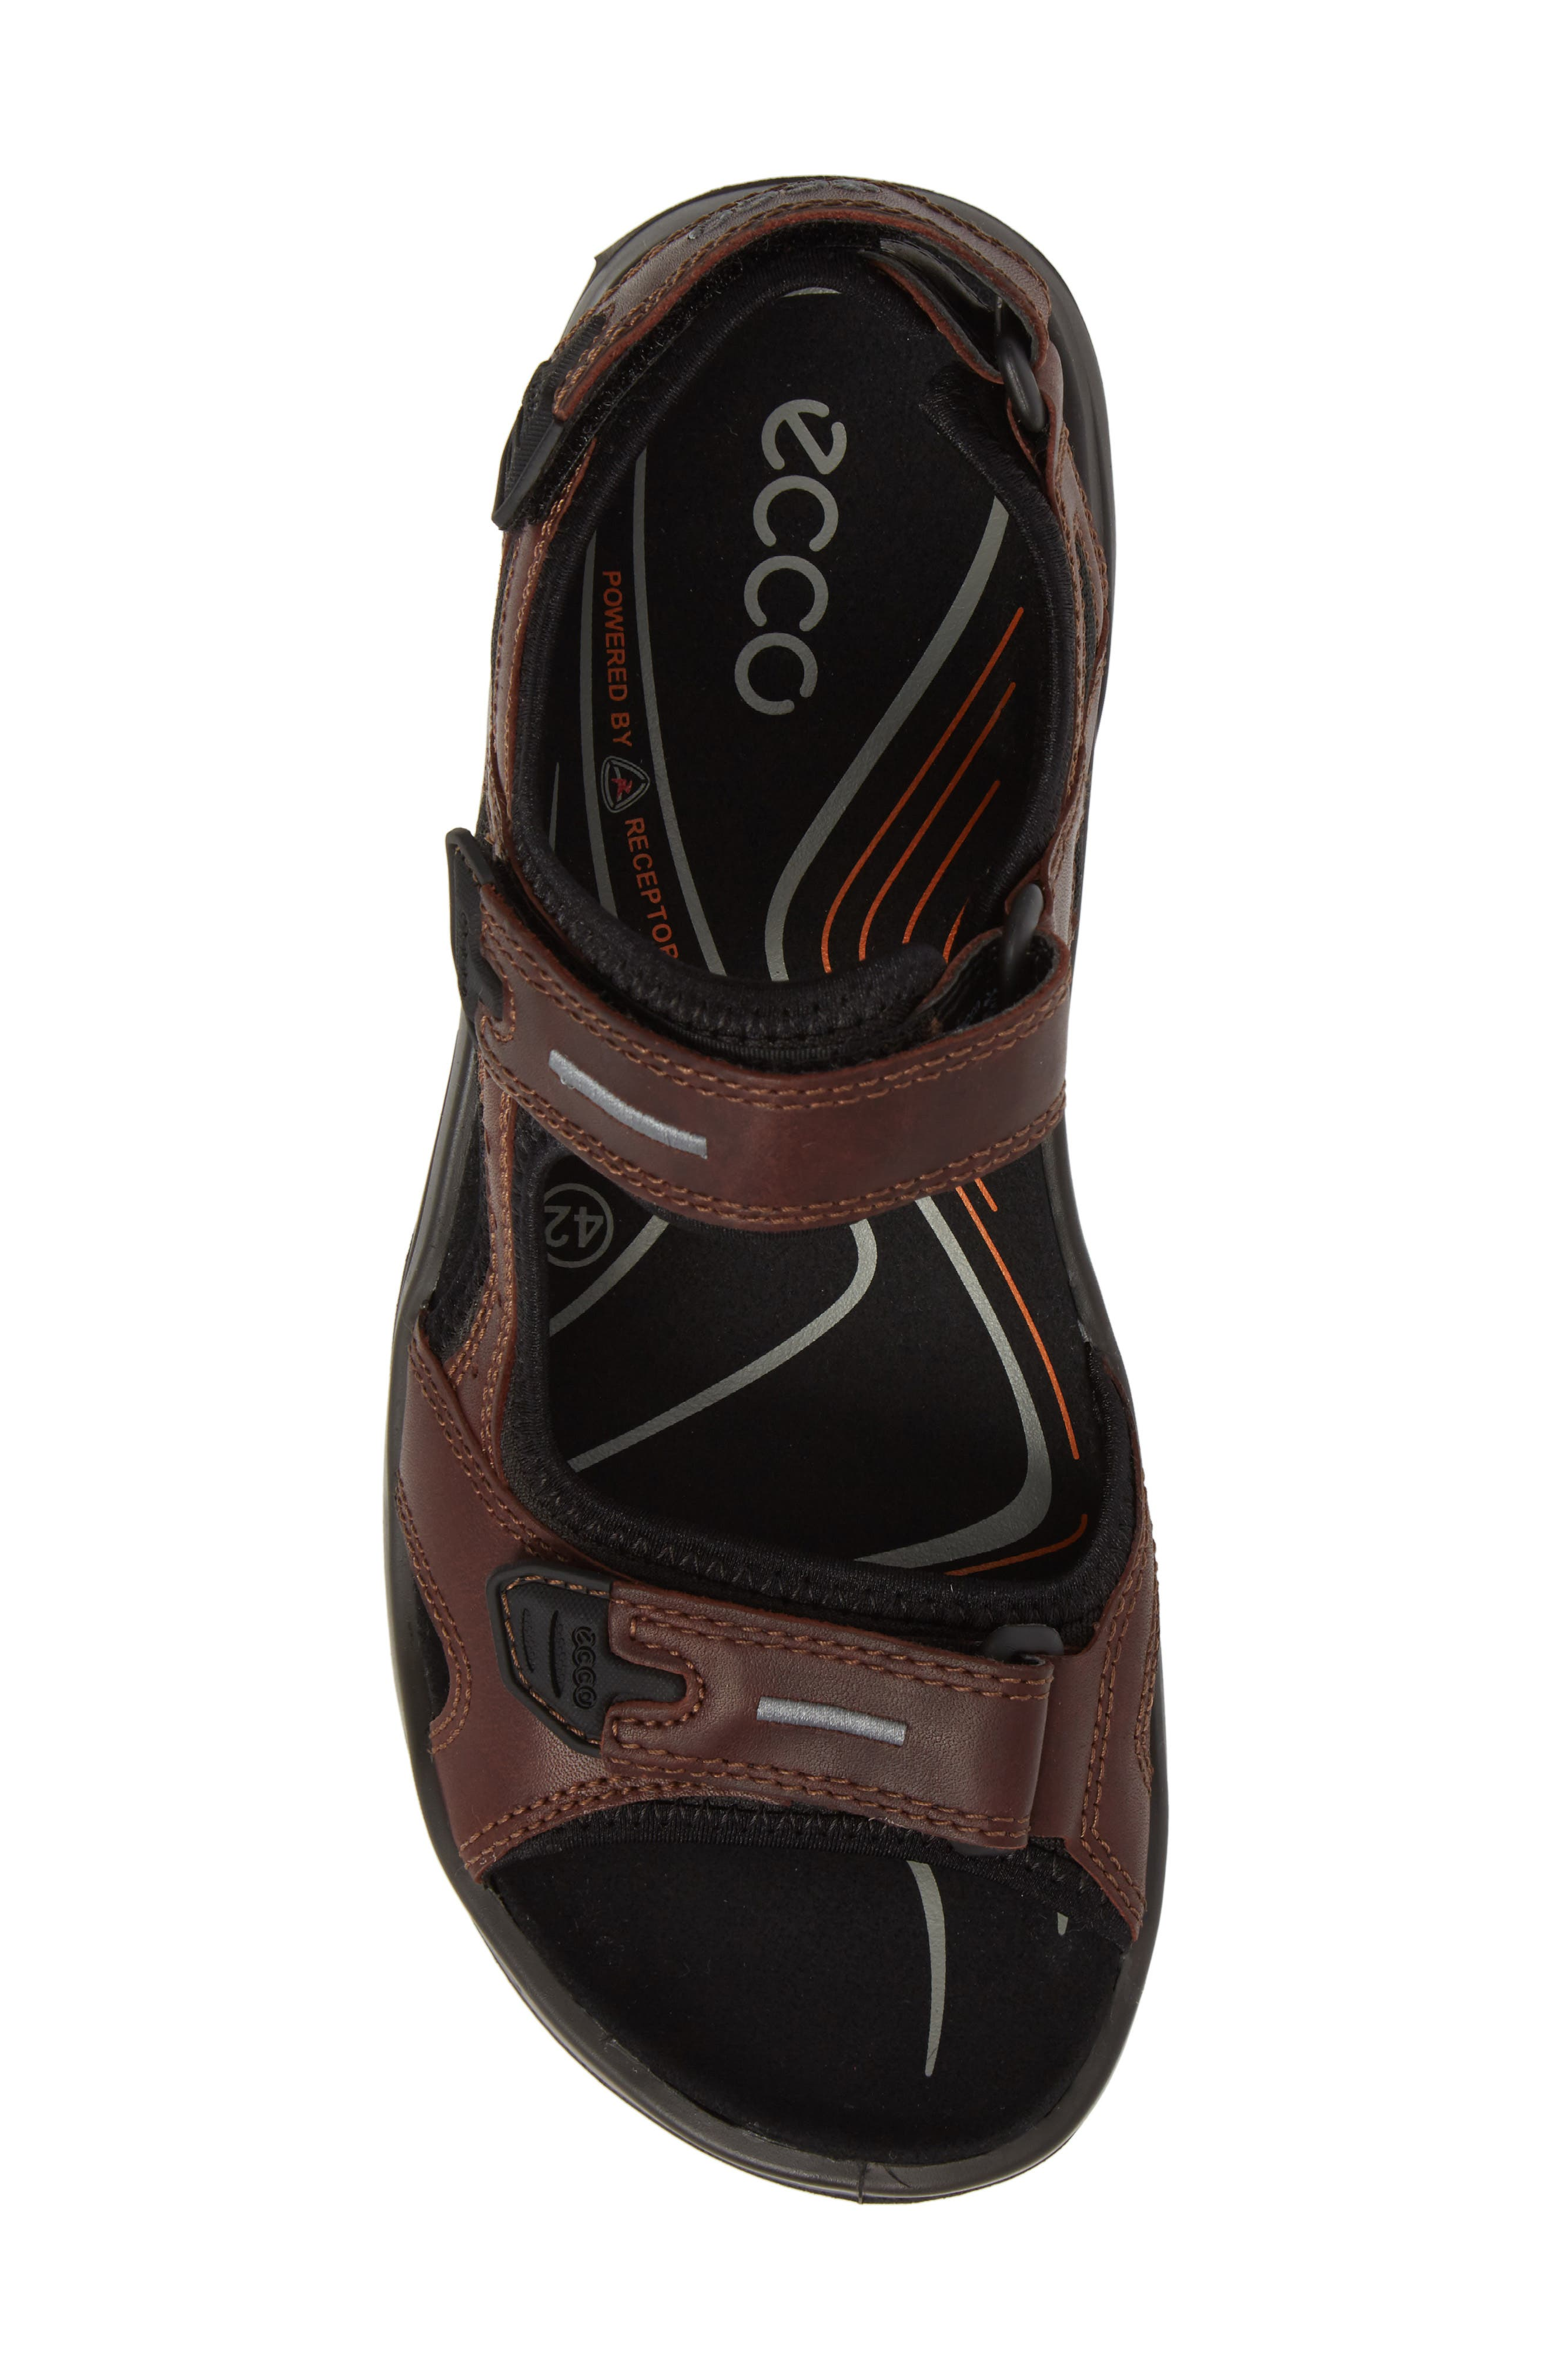 Offroad Sport Sandal,                             Alternate thumbnail 5, color,                             Brandy Leather